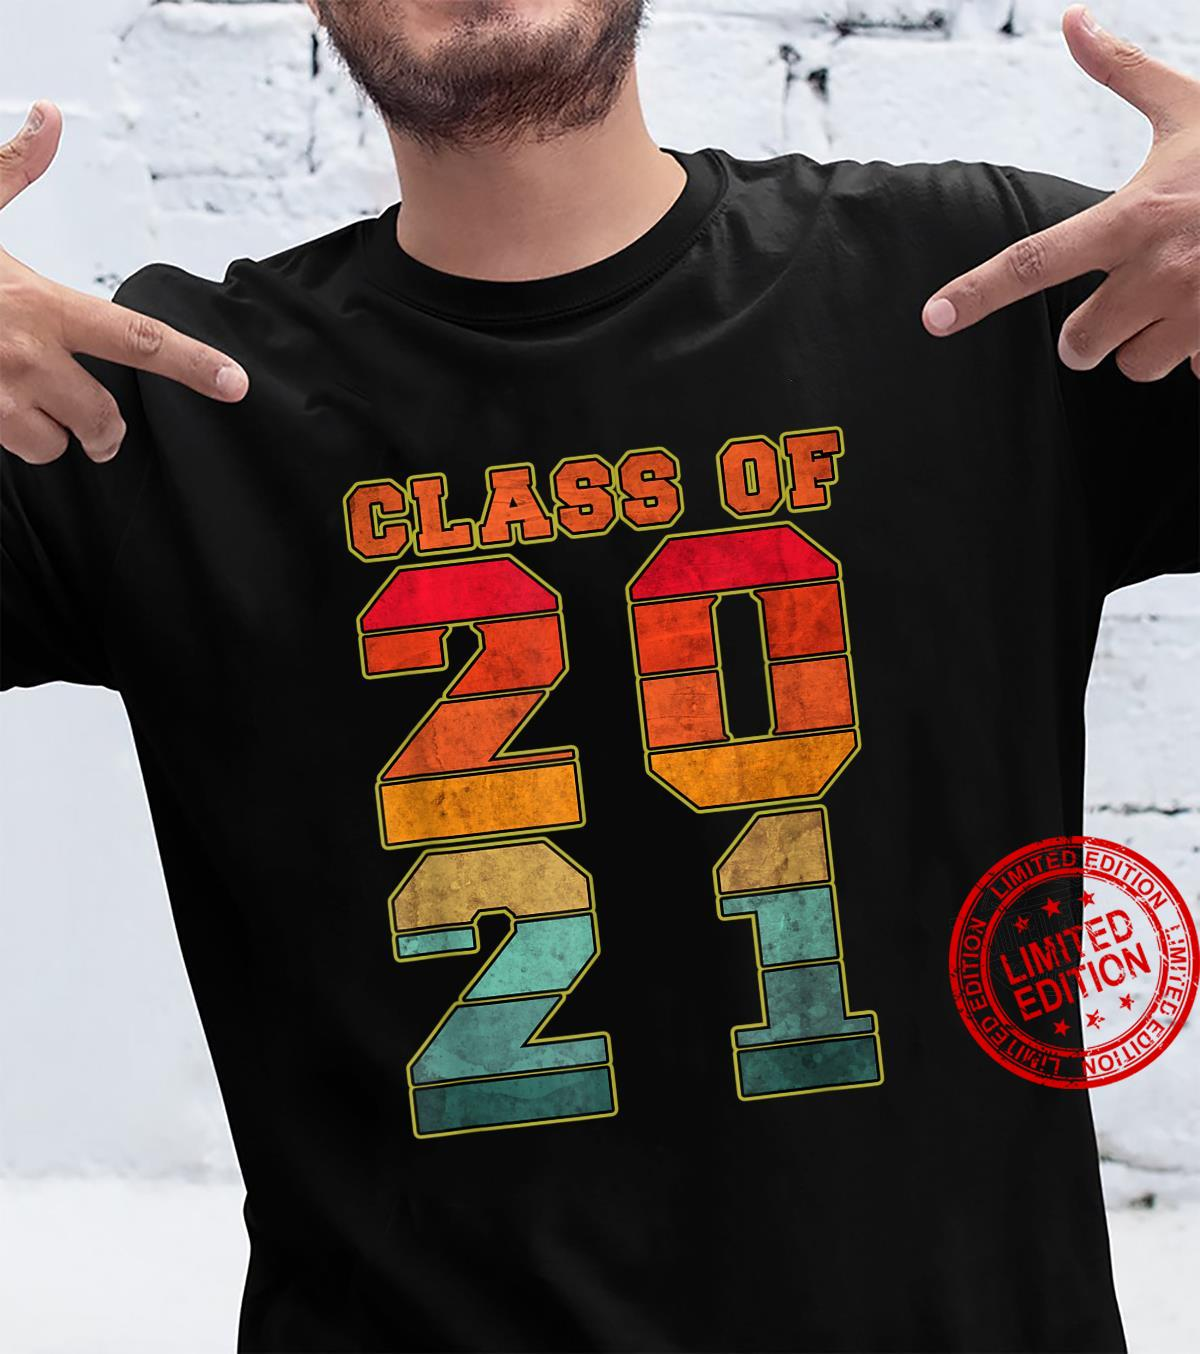 CLASS OF 2021 Graduation with Sunset Colors Shirt